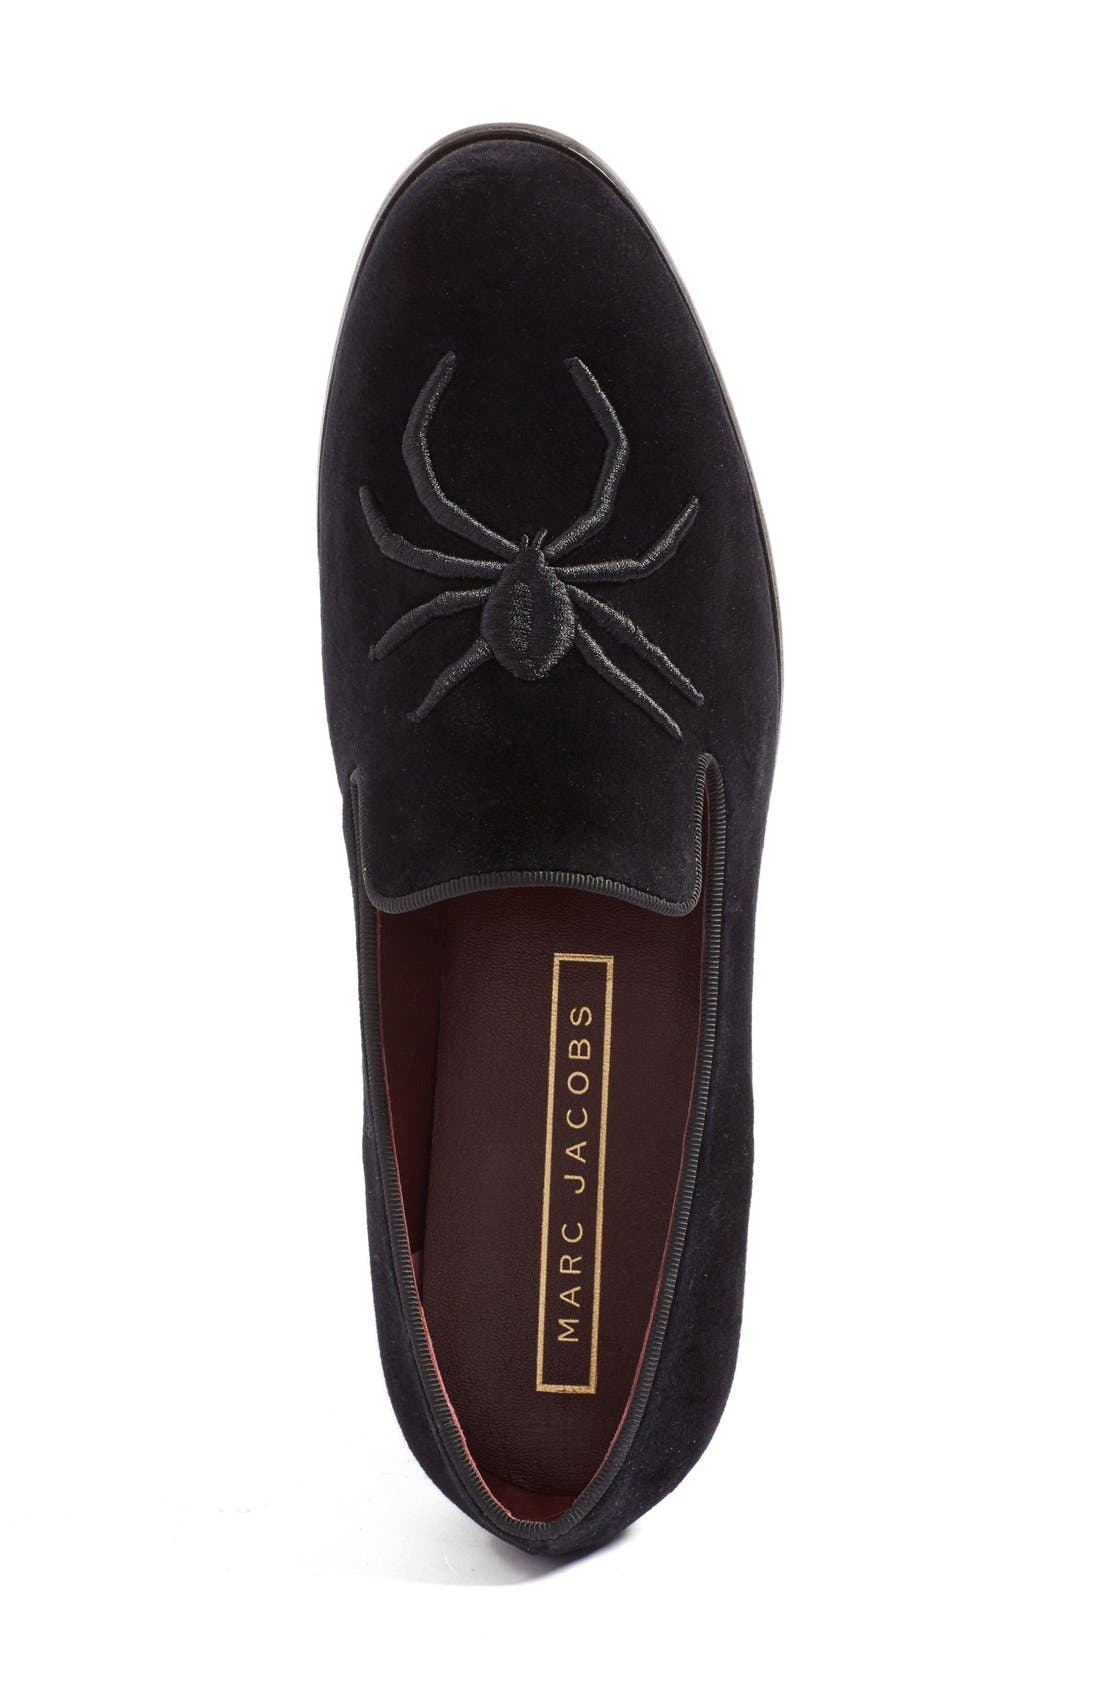 Alternate Image 3  - MARC JACOBS 'Zoe' Embroidered Spider Loafer (Women)